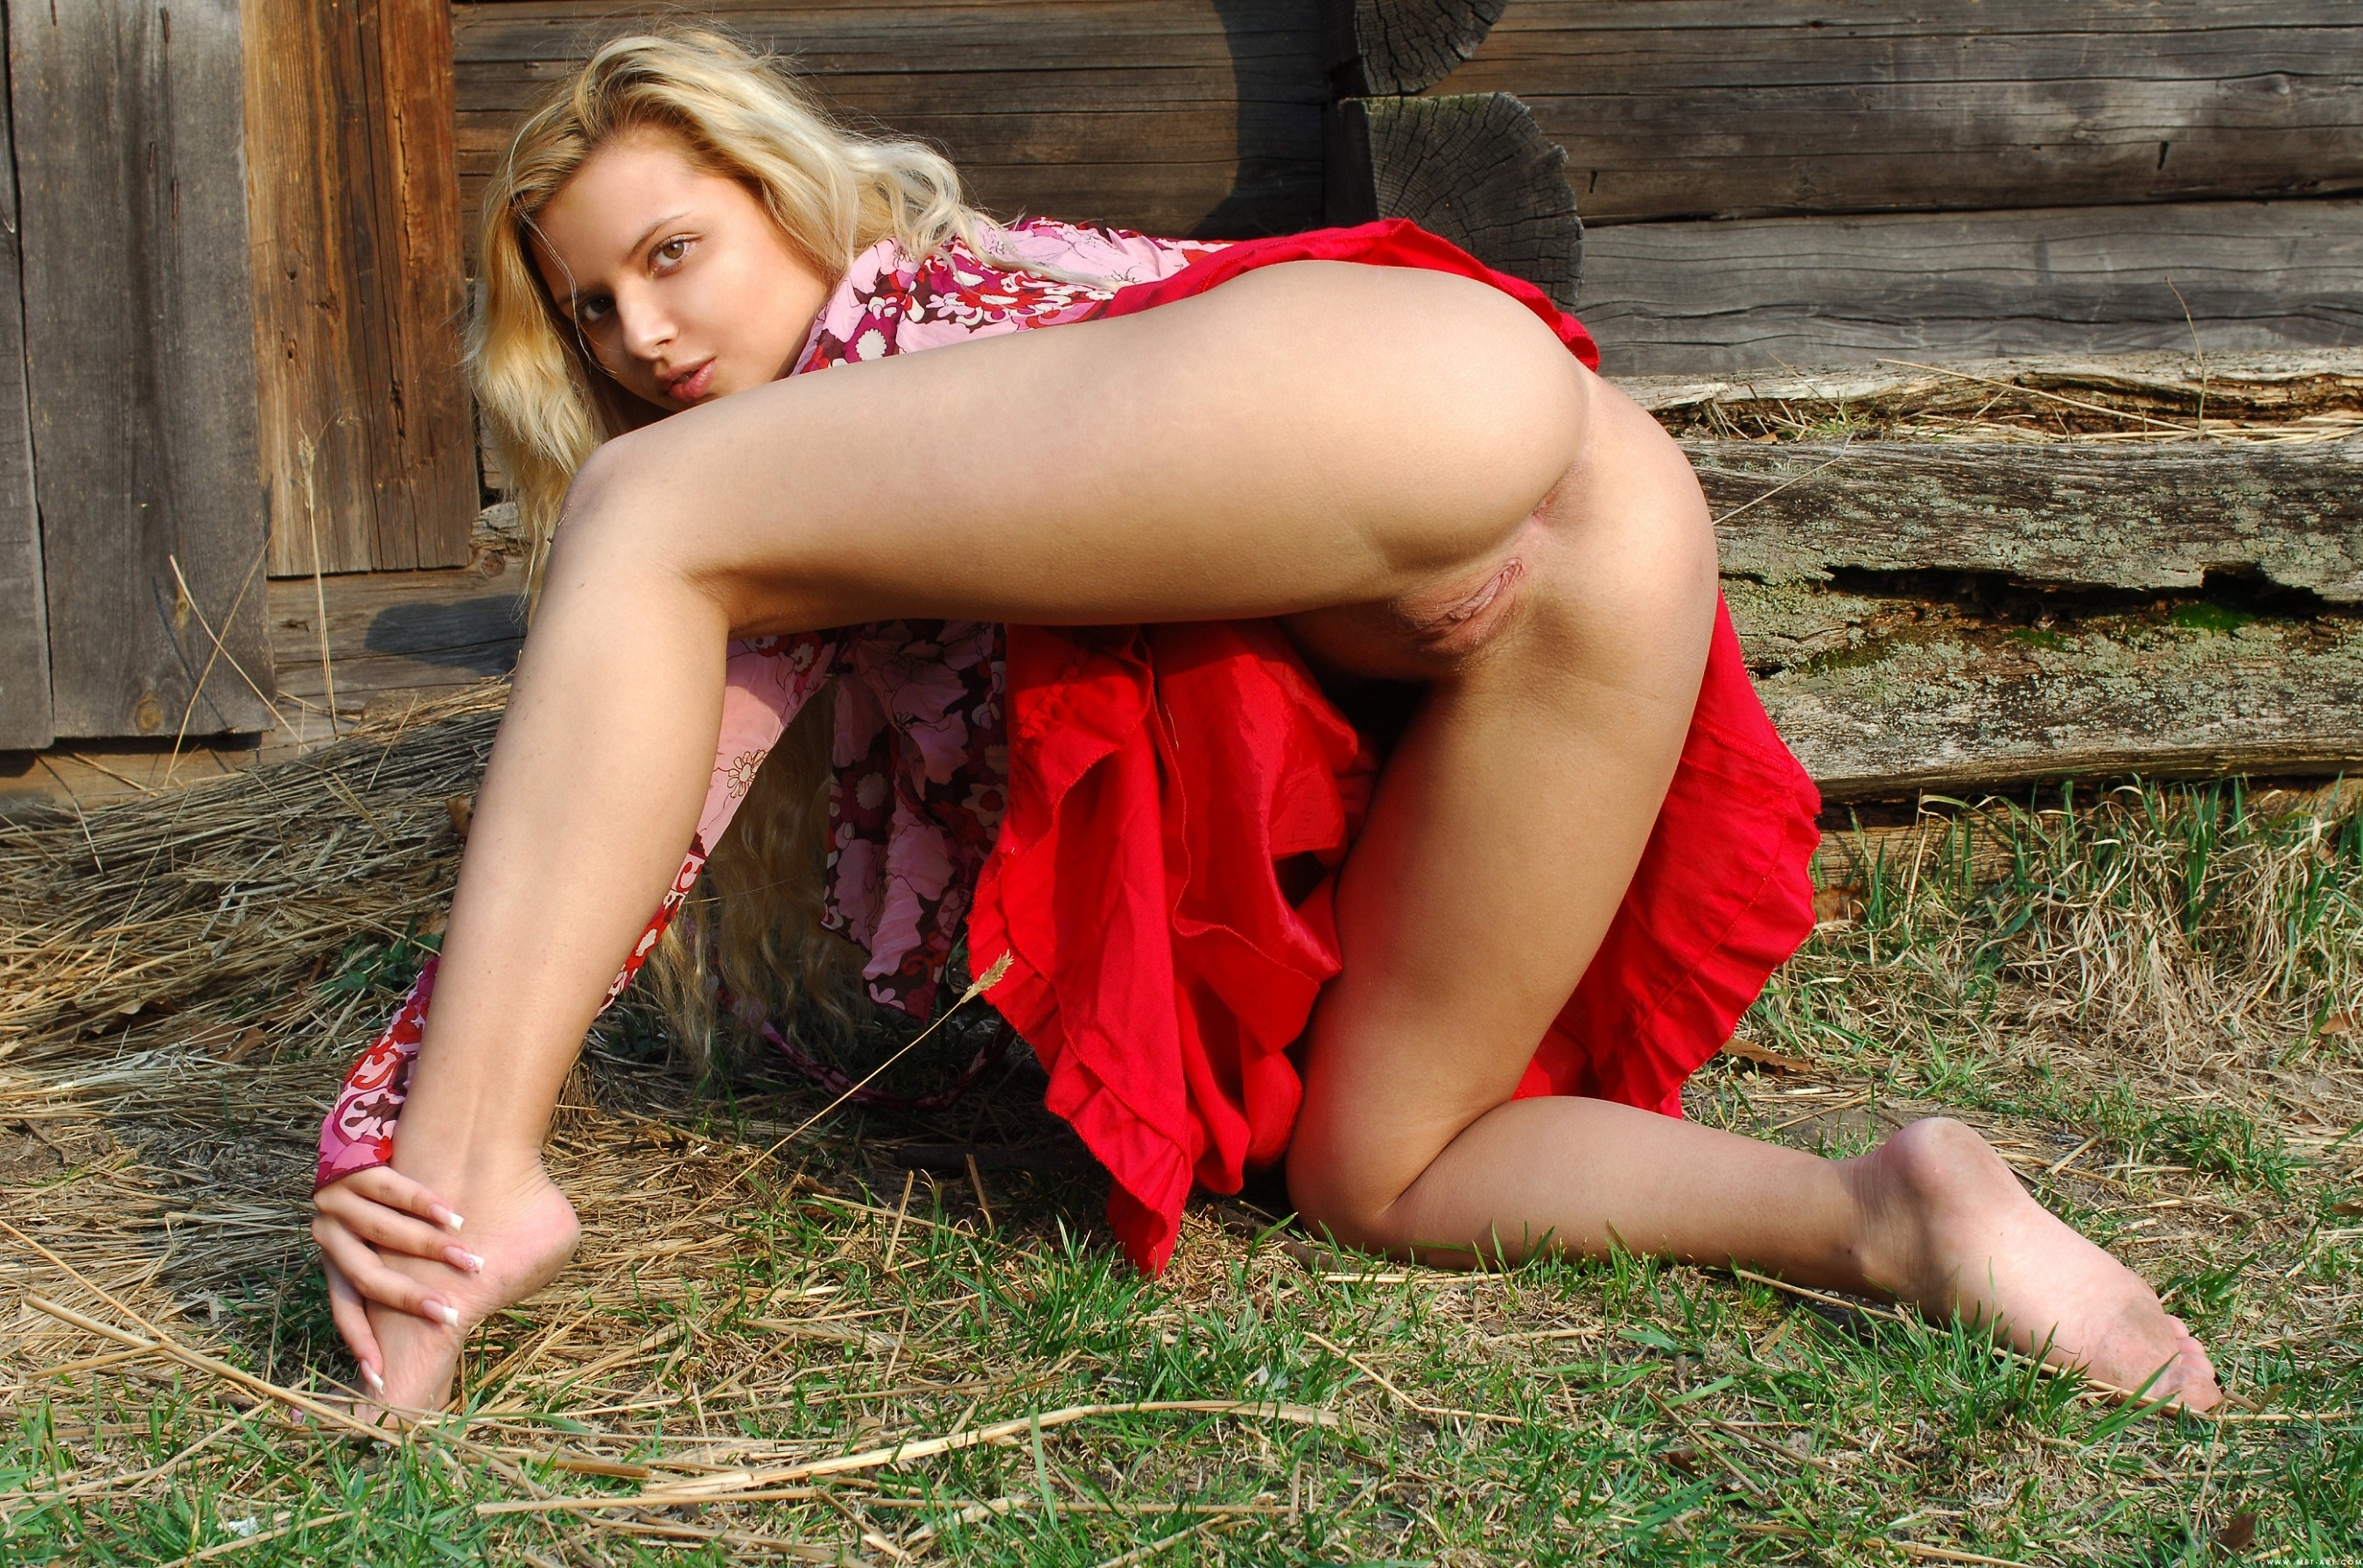 Wallpaper Angelini A, Blonde, Pussy, Hot, Spread Legs, Upskirt Desktop Wallpaper - Xxx Walls - Id 53466 - Ftopxcom-4339